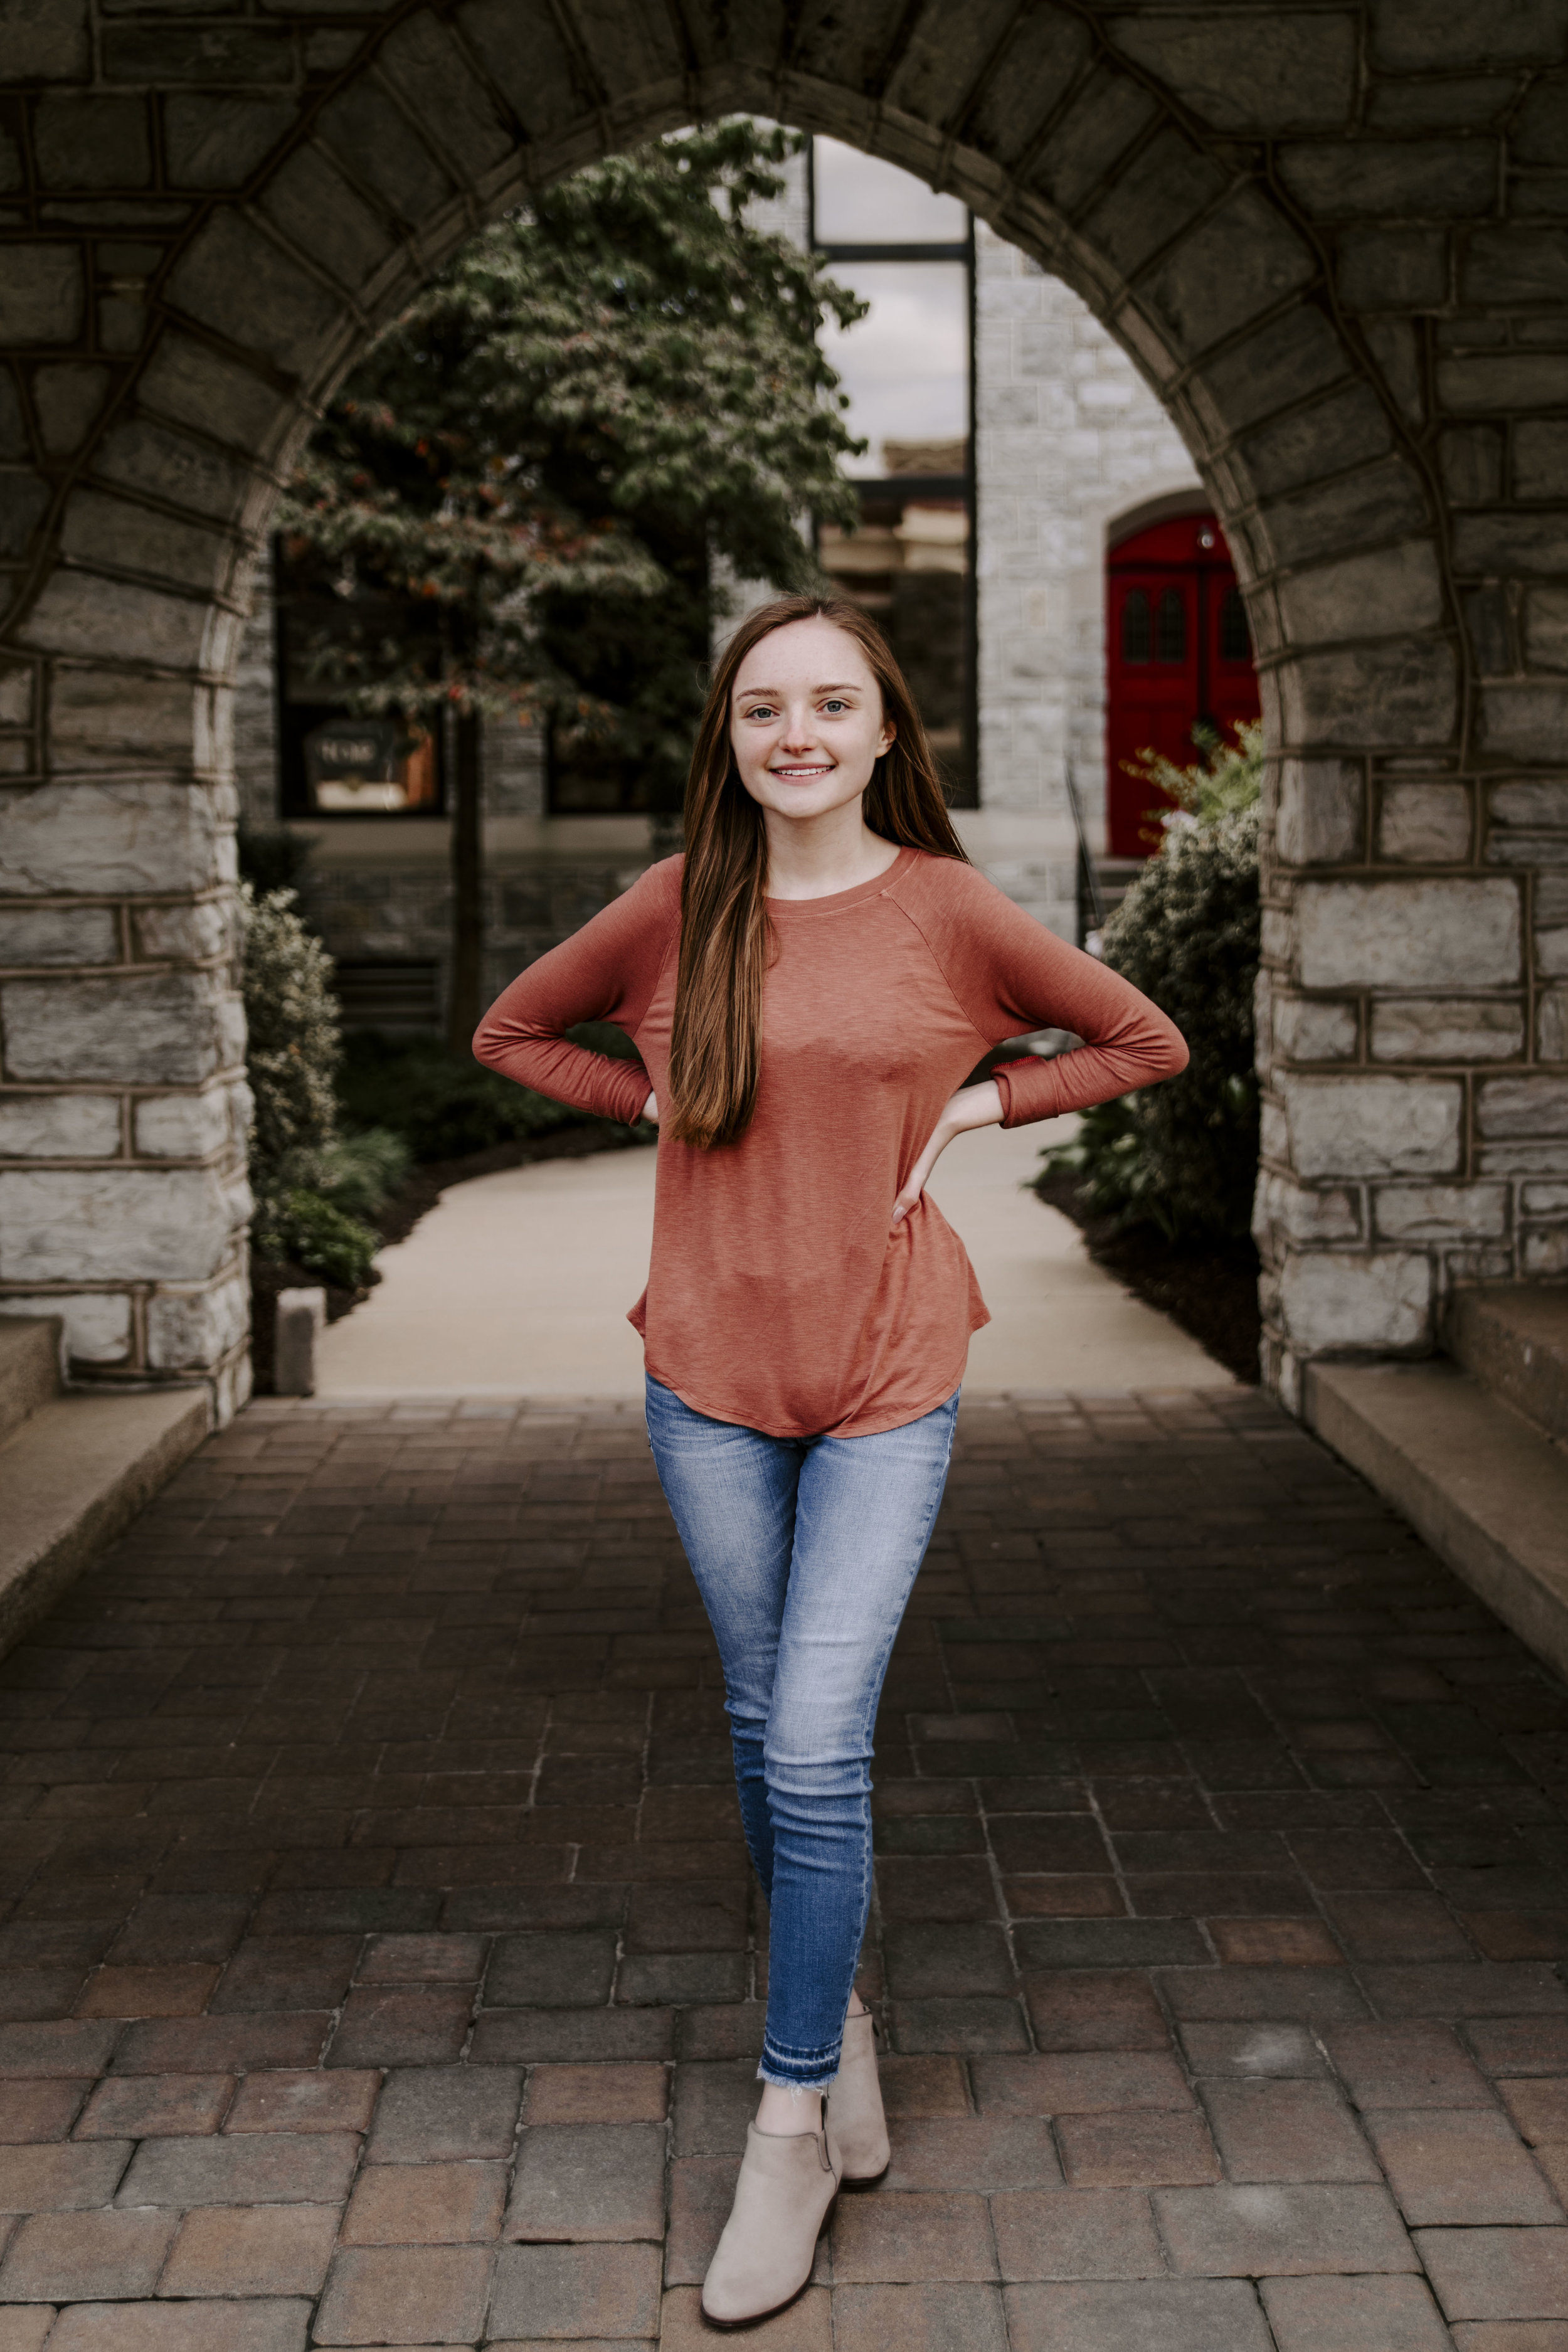 5 Things you need before senior year by Kara McCurdy